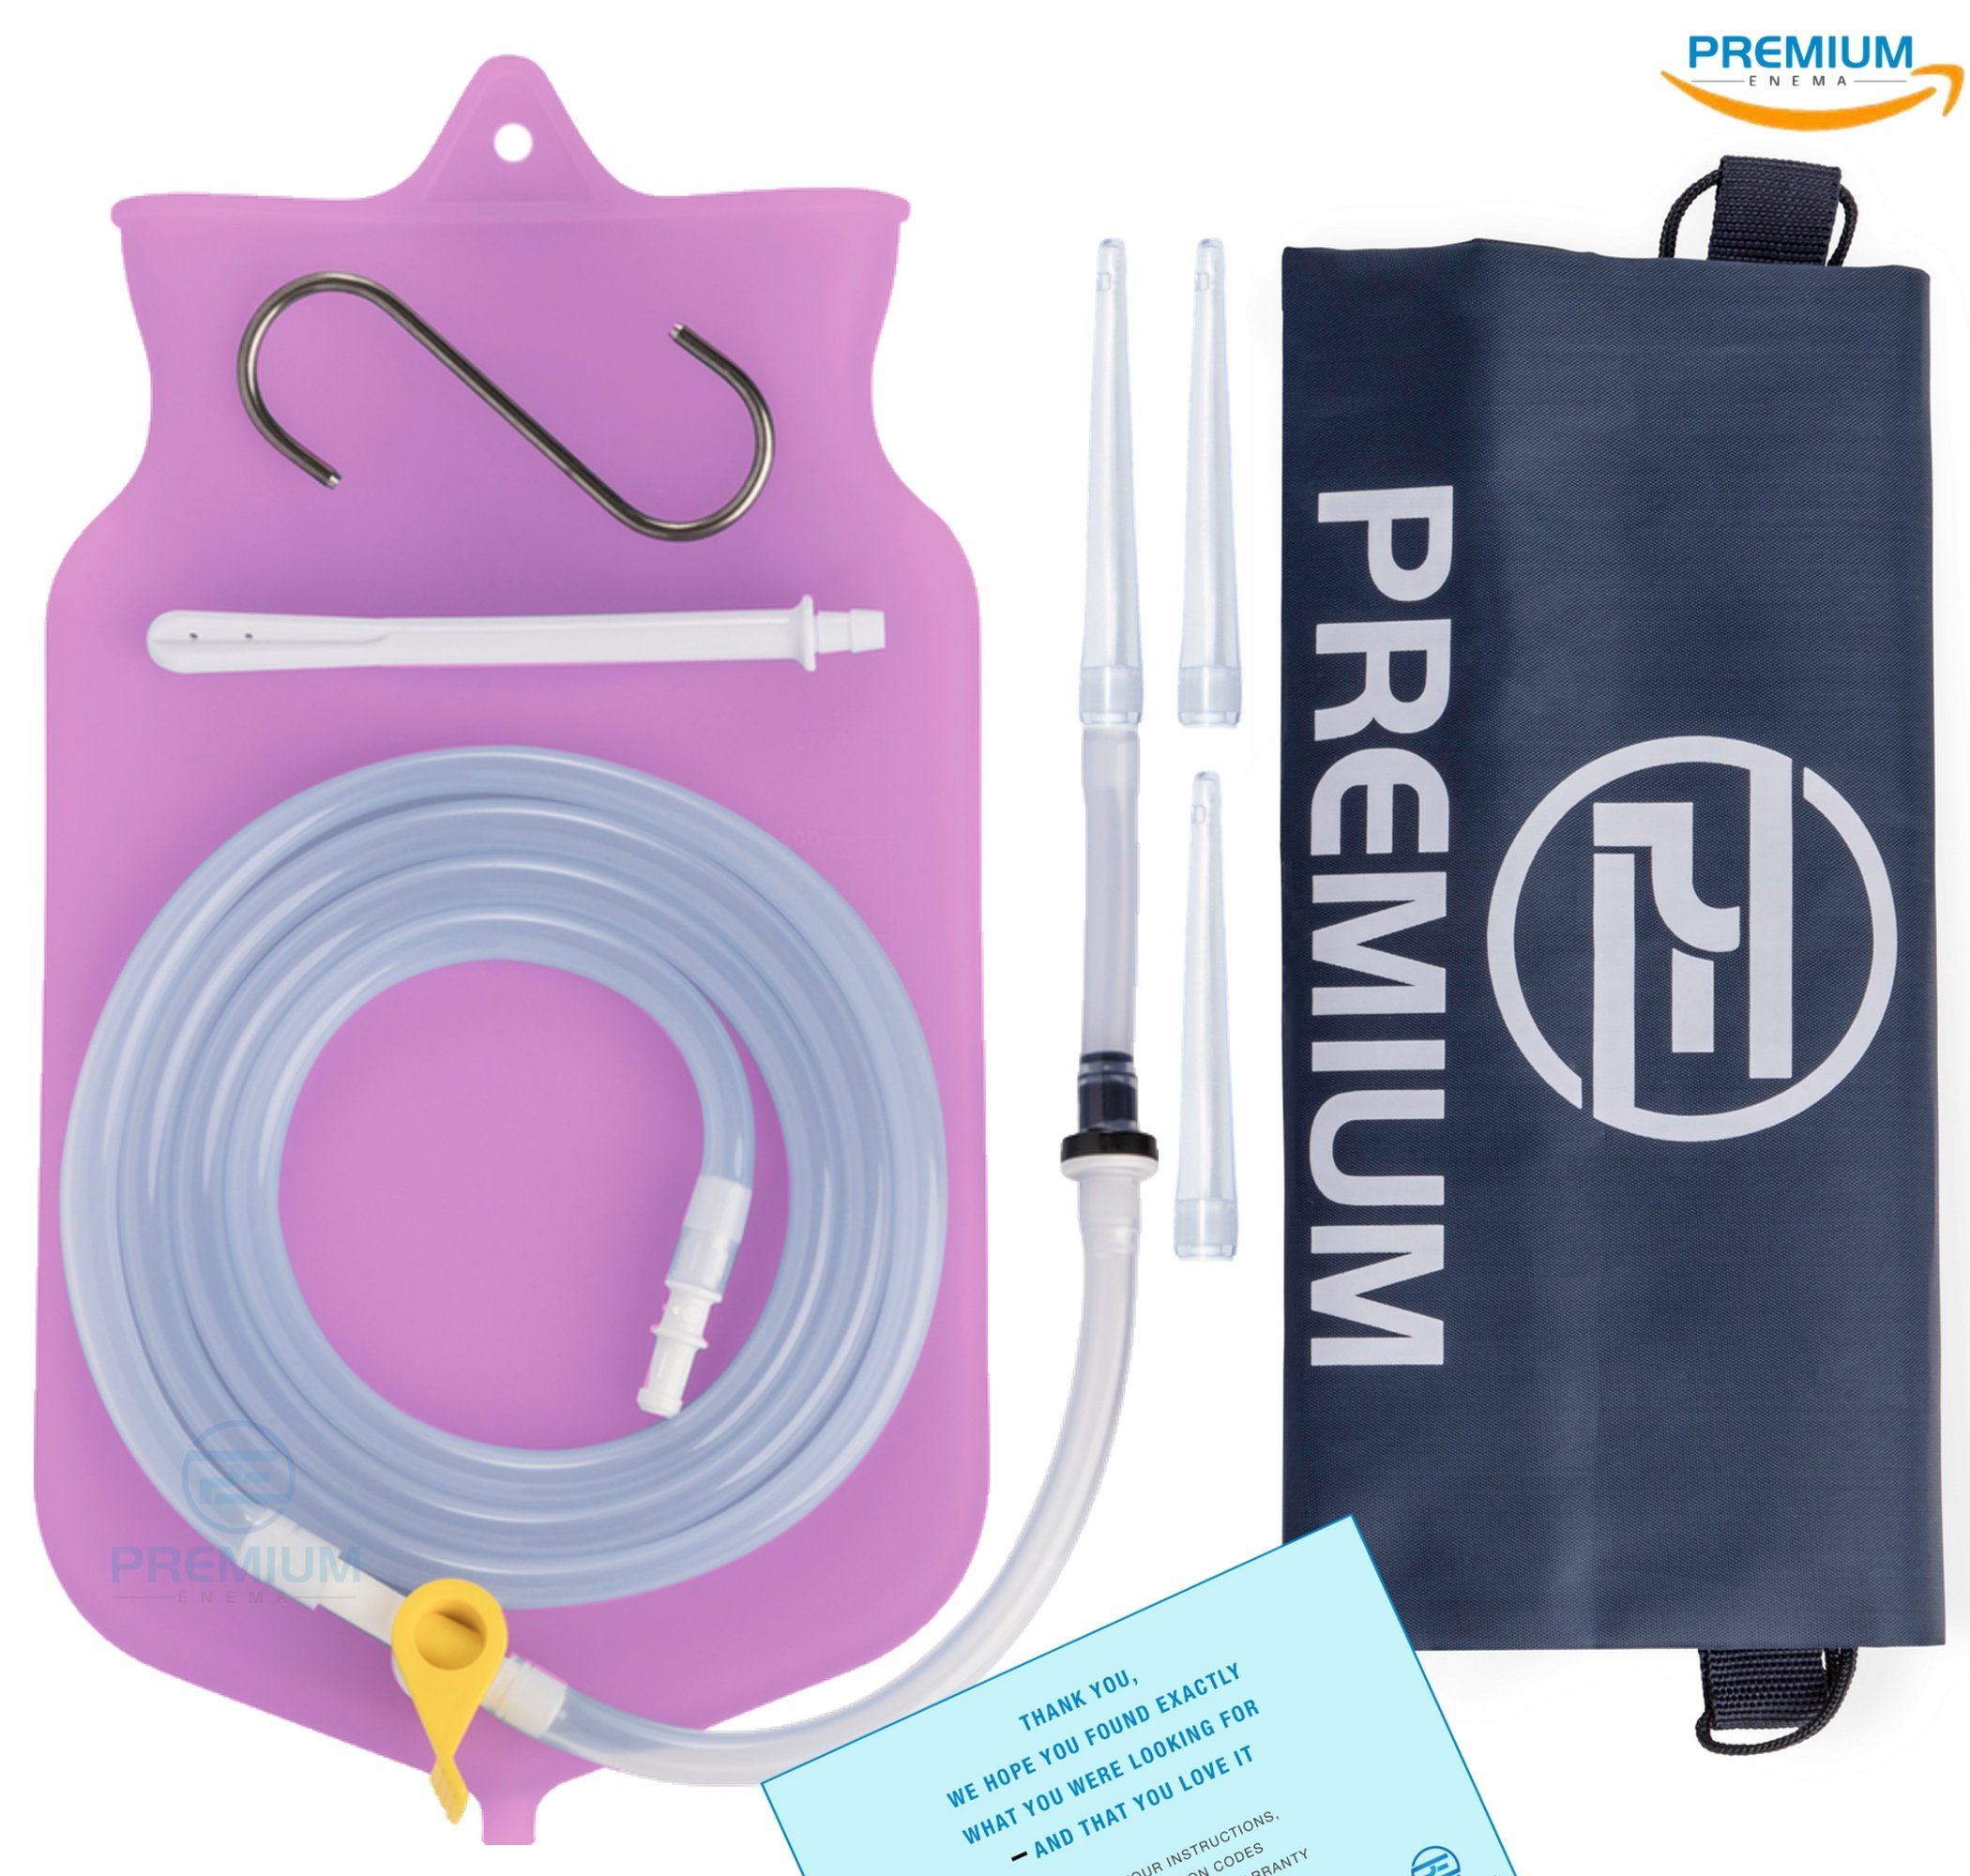 Premium Enema Silicone Enema Bag Kit. Non-Toxic. BPA and Phthalates Free. Suitable for Home, Water & Coffee Colon Cleansing. 2 Quart Bag (Purple)